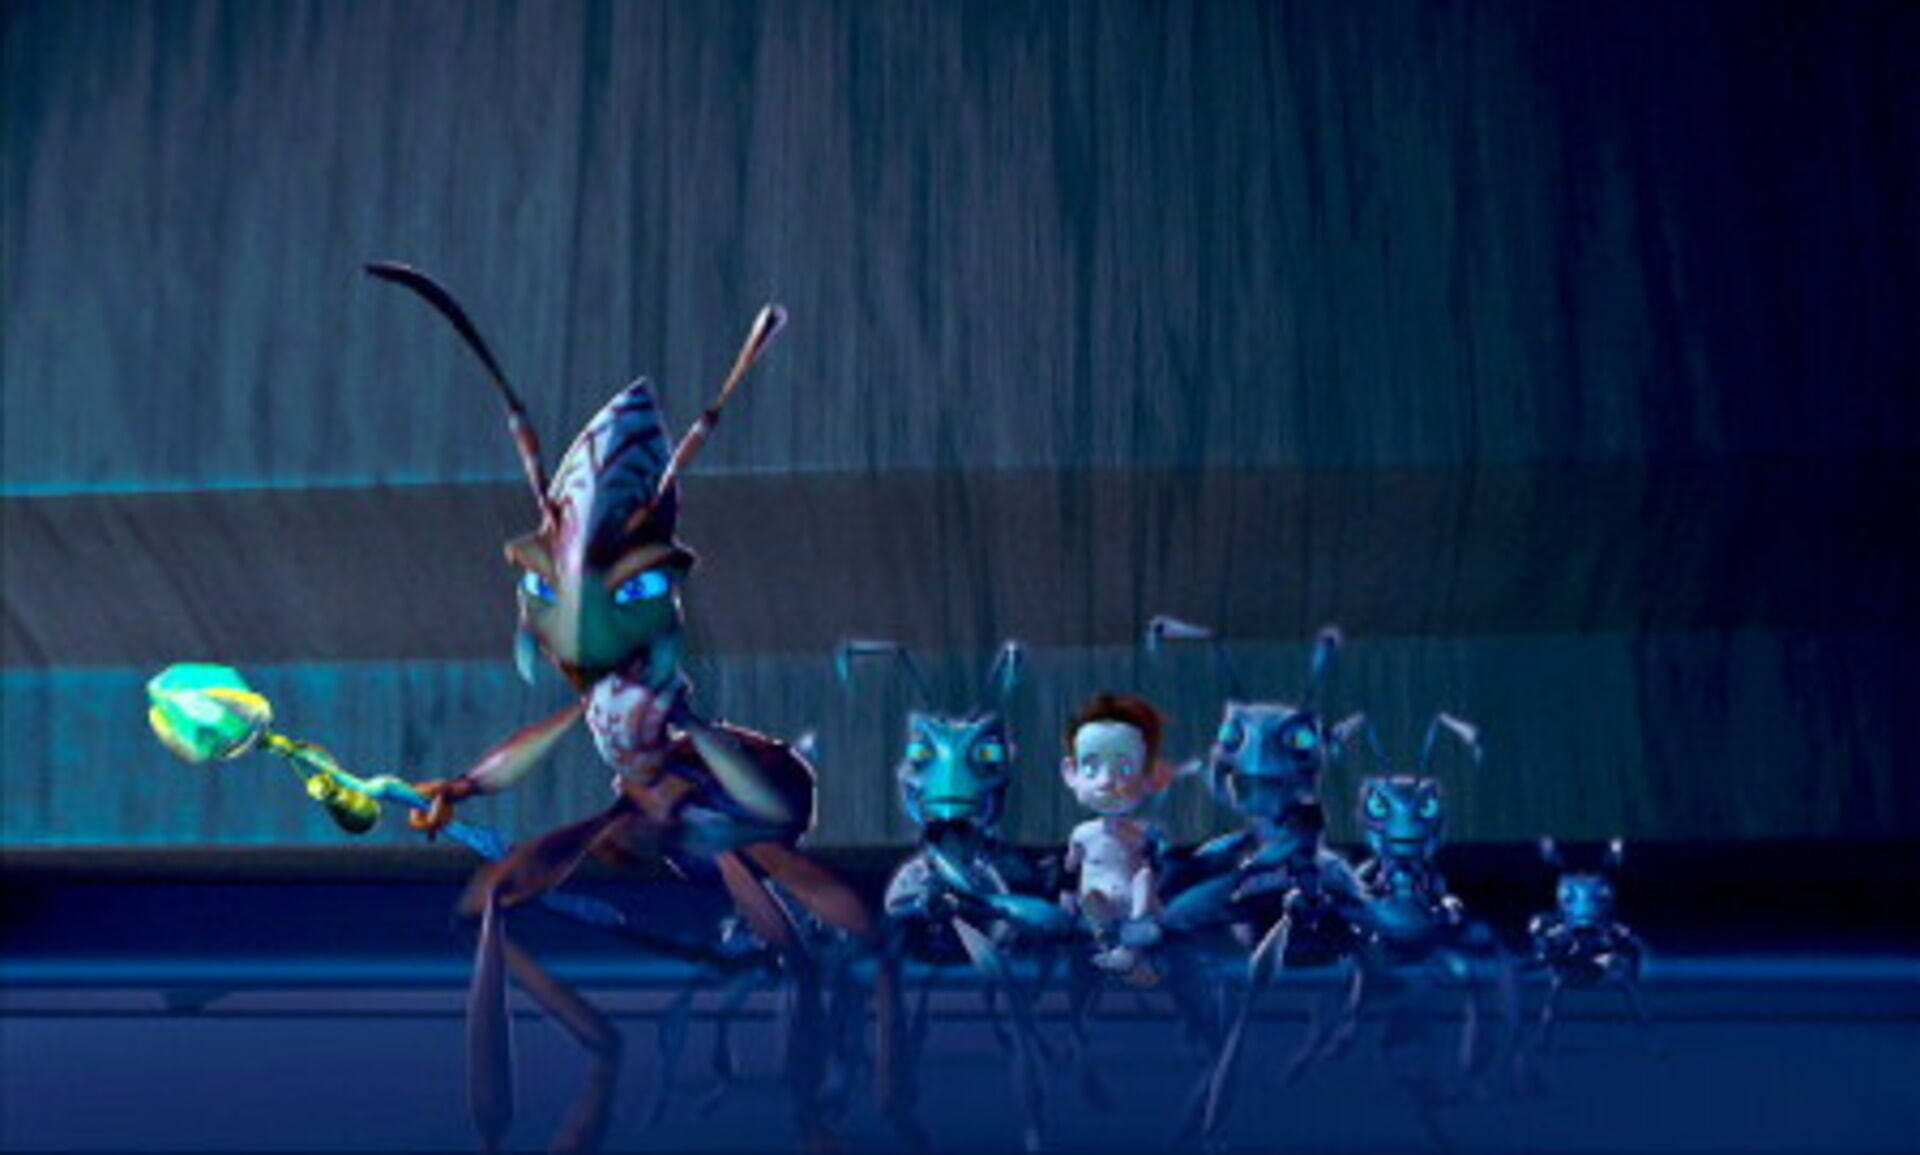 The Ant Bully - Image 8